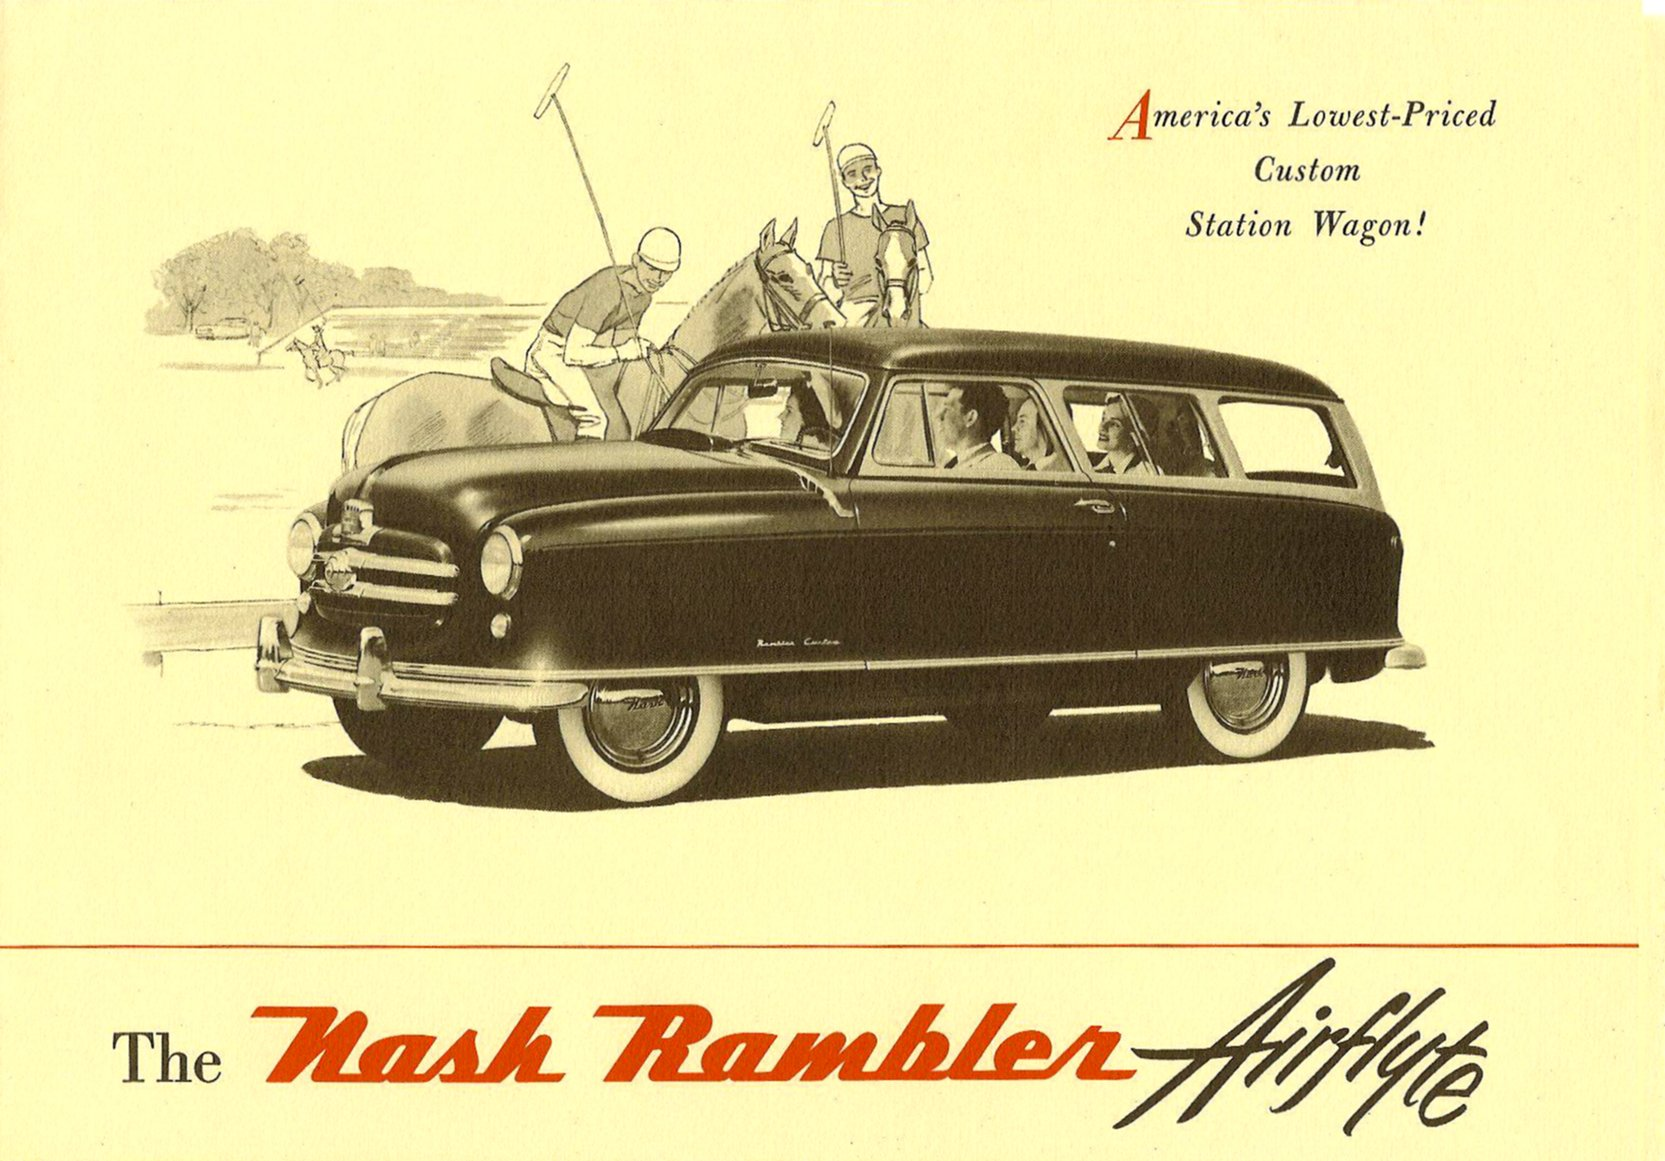 The Nash Rambler Airflyte 1950 America's Lowest-Priced Custom Station Wagon Front page Dated: Jul 17, 1950 Folded: 11″x7.75″ Open: 22″x15.5″ NSP 50-496-100M-5-50